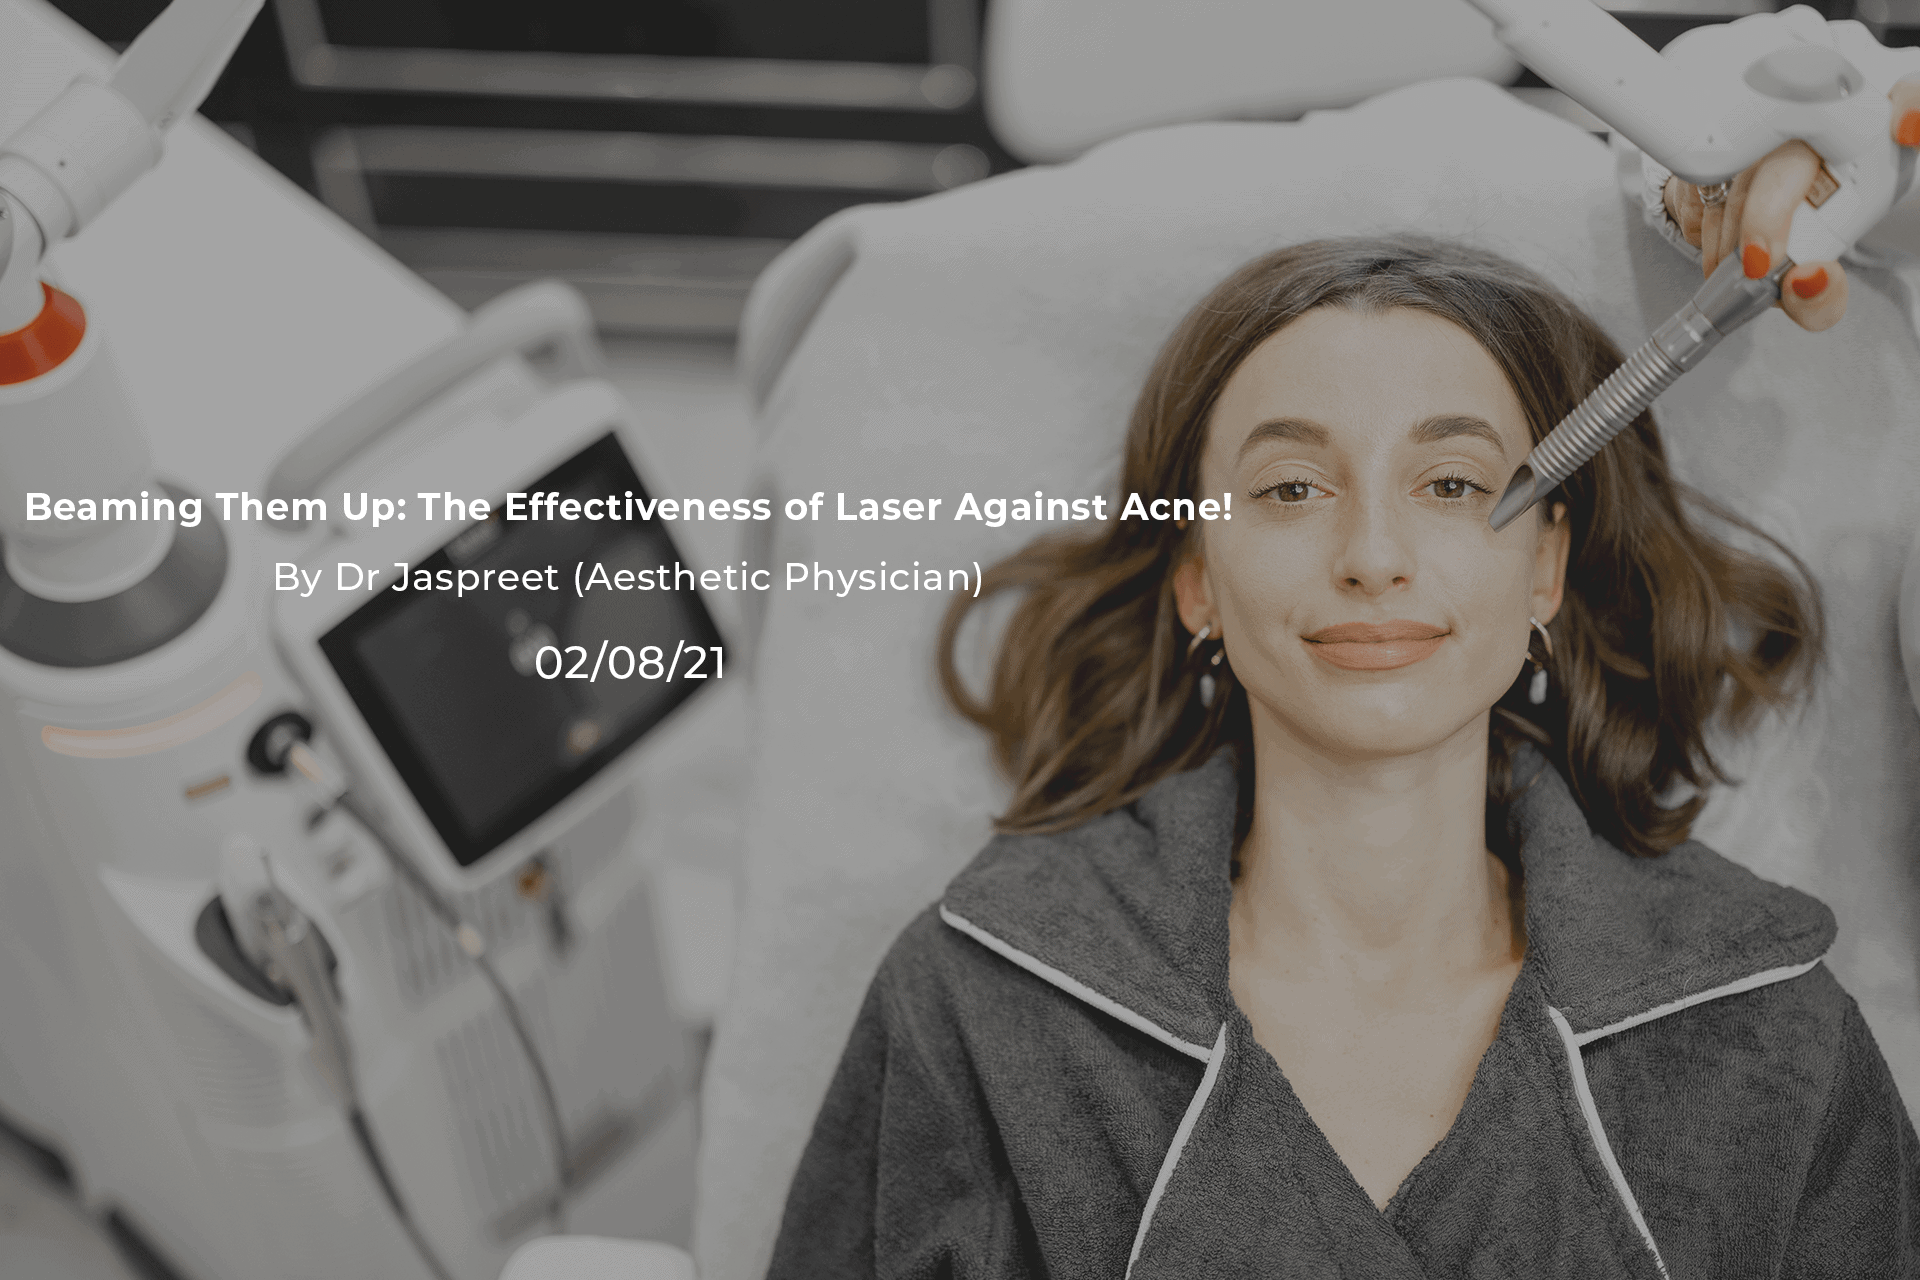 Beaming Them Up The Effectiveness of Laser Against Acne